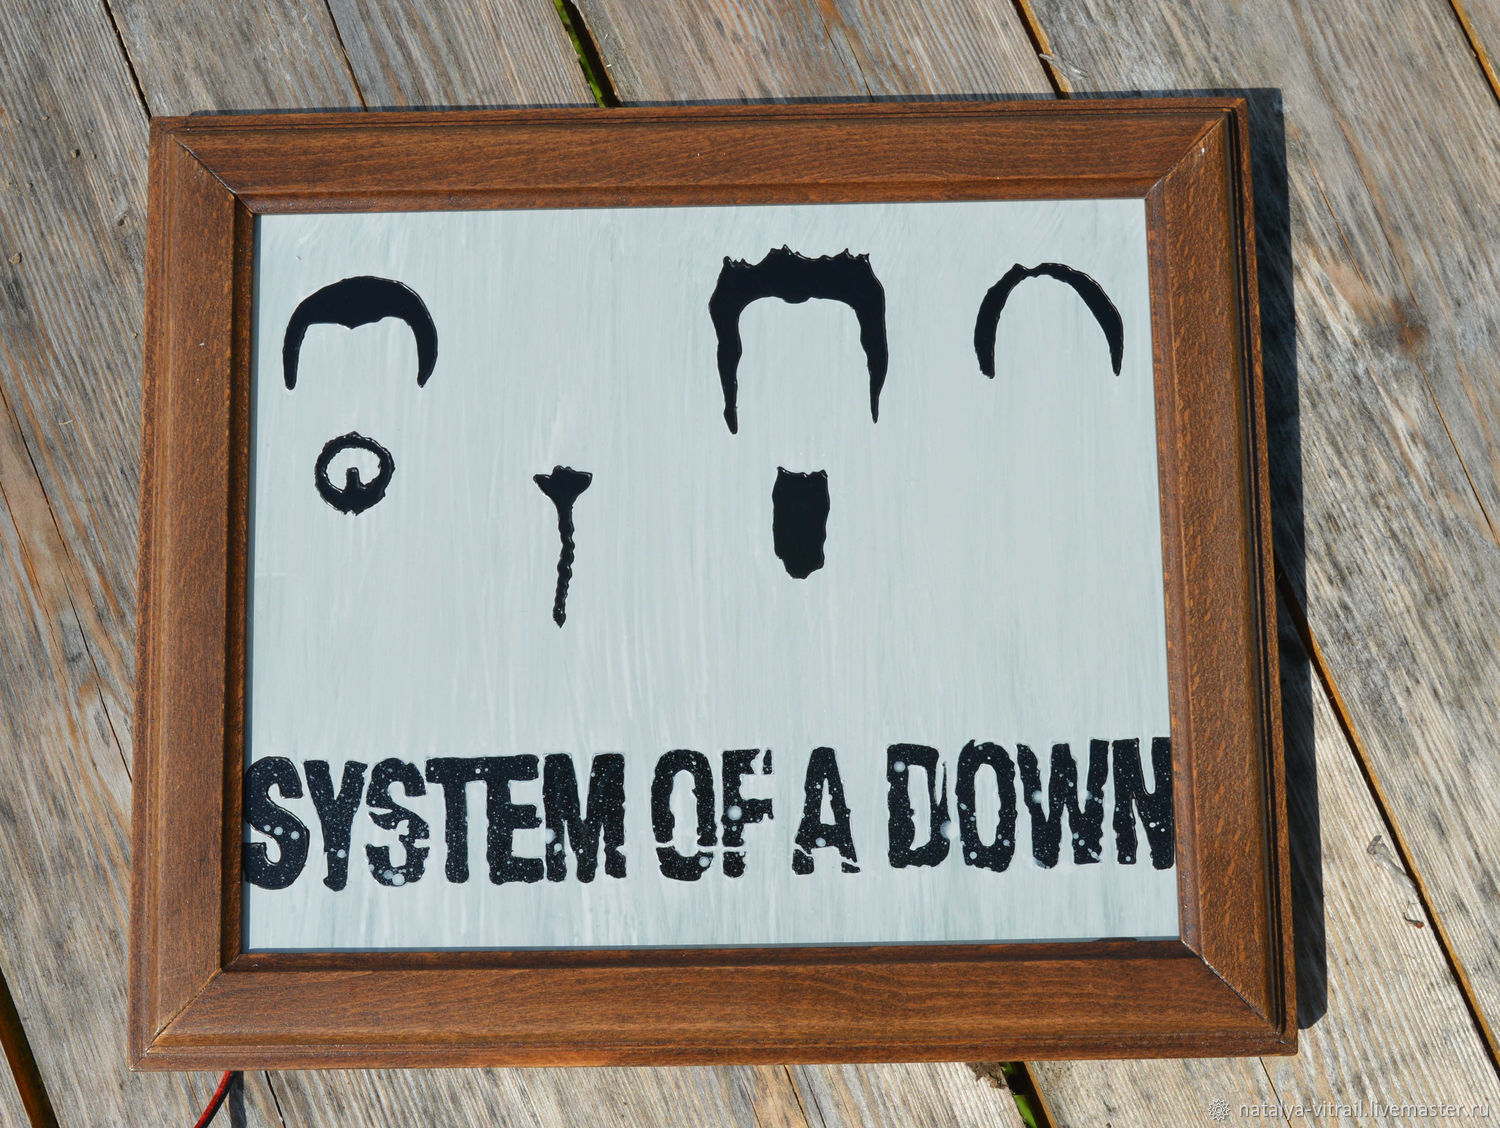 Illuminated picture system of a down for fans of the band, Subculture Attributes, Klin,  Фото №1